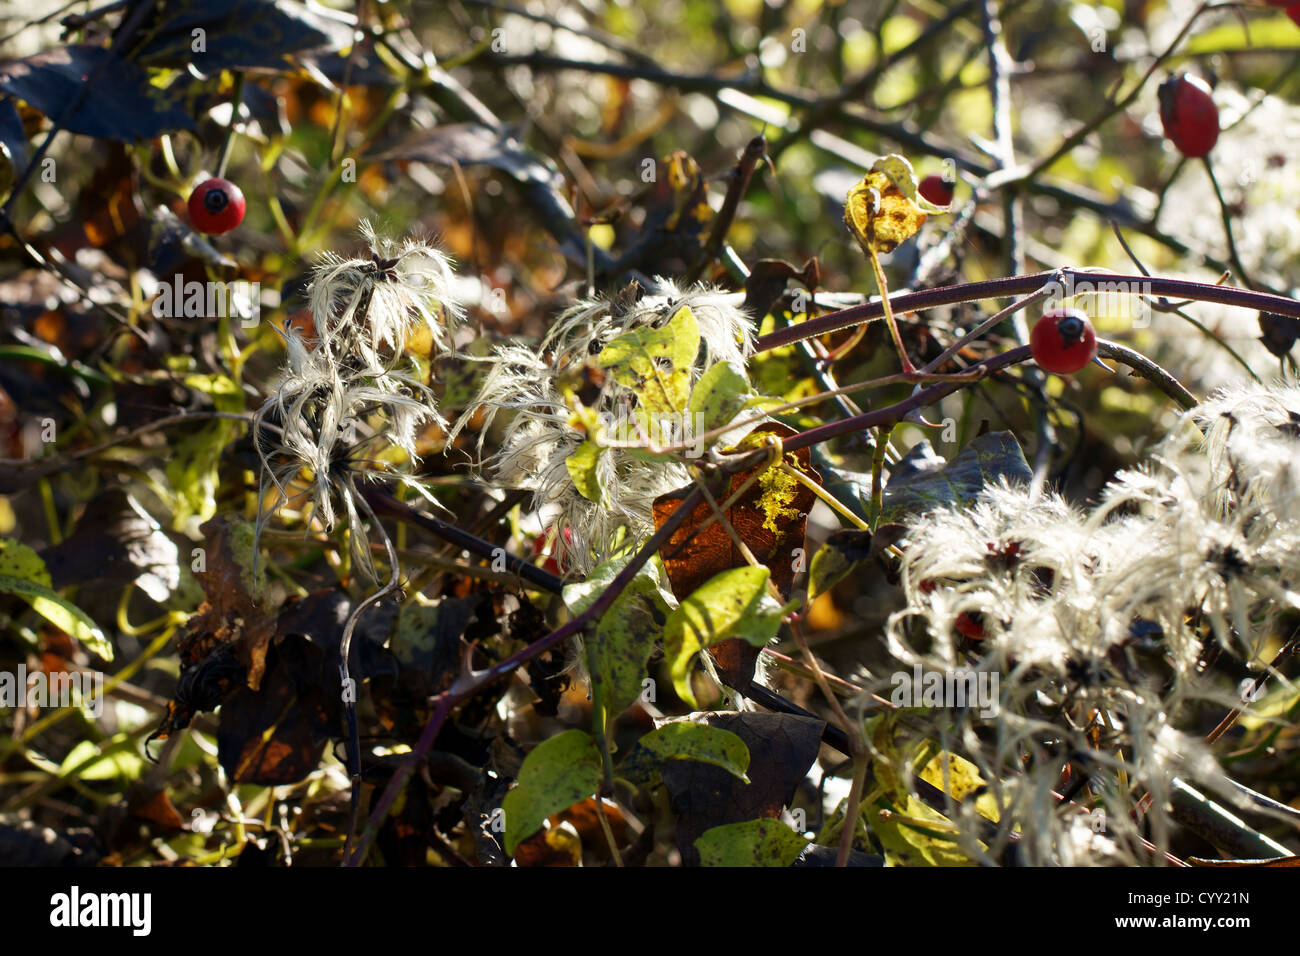 Old Man's Beard Clematis Vitalba and Rose Hips Haws growing in a downland hedgerow in November - Stock Image